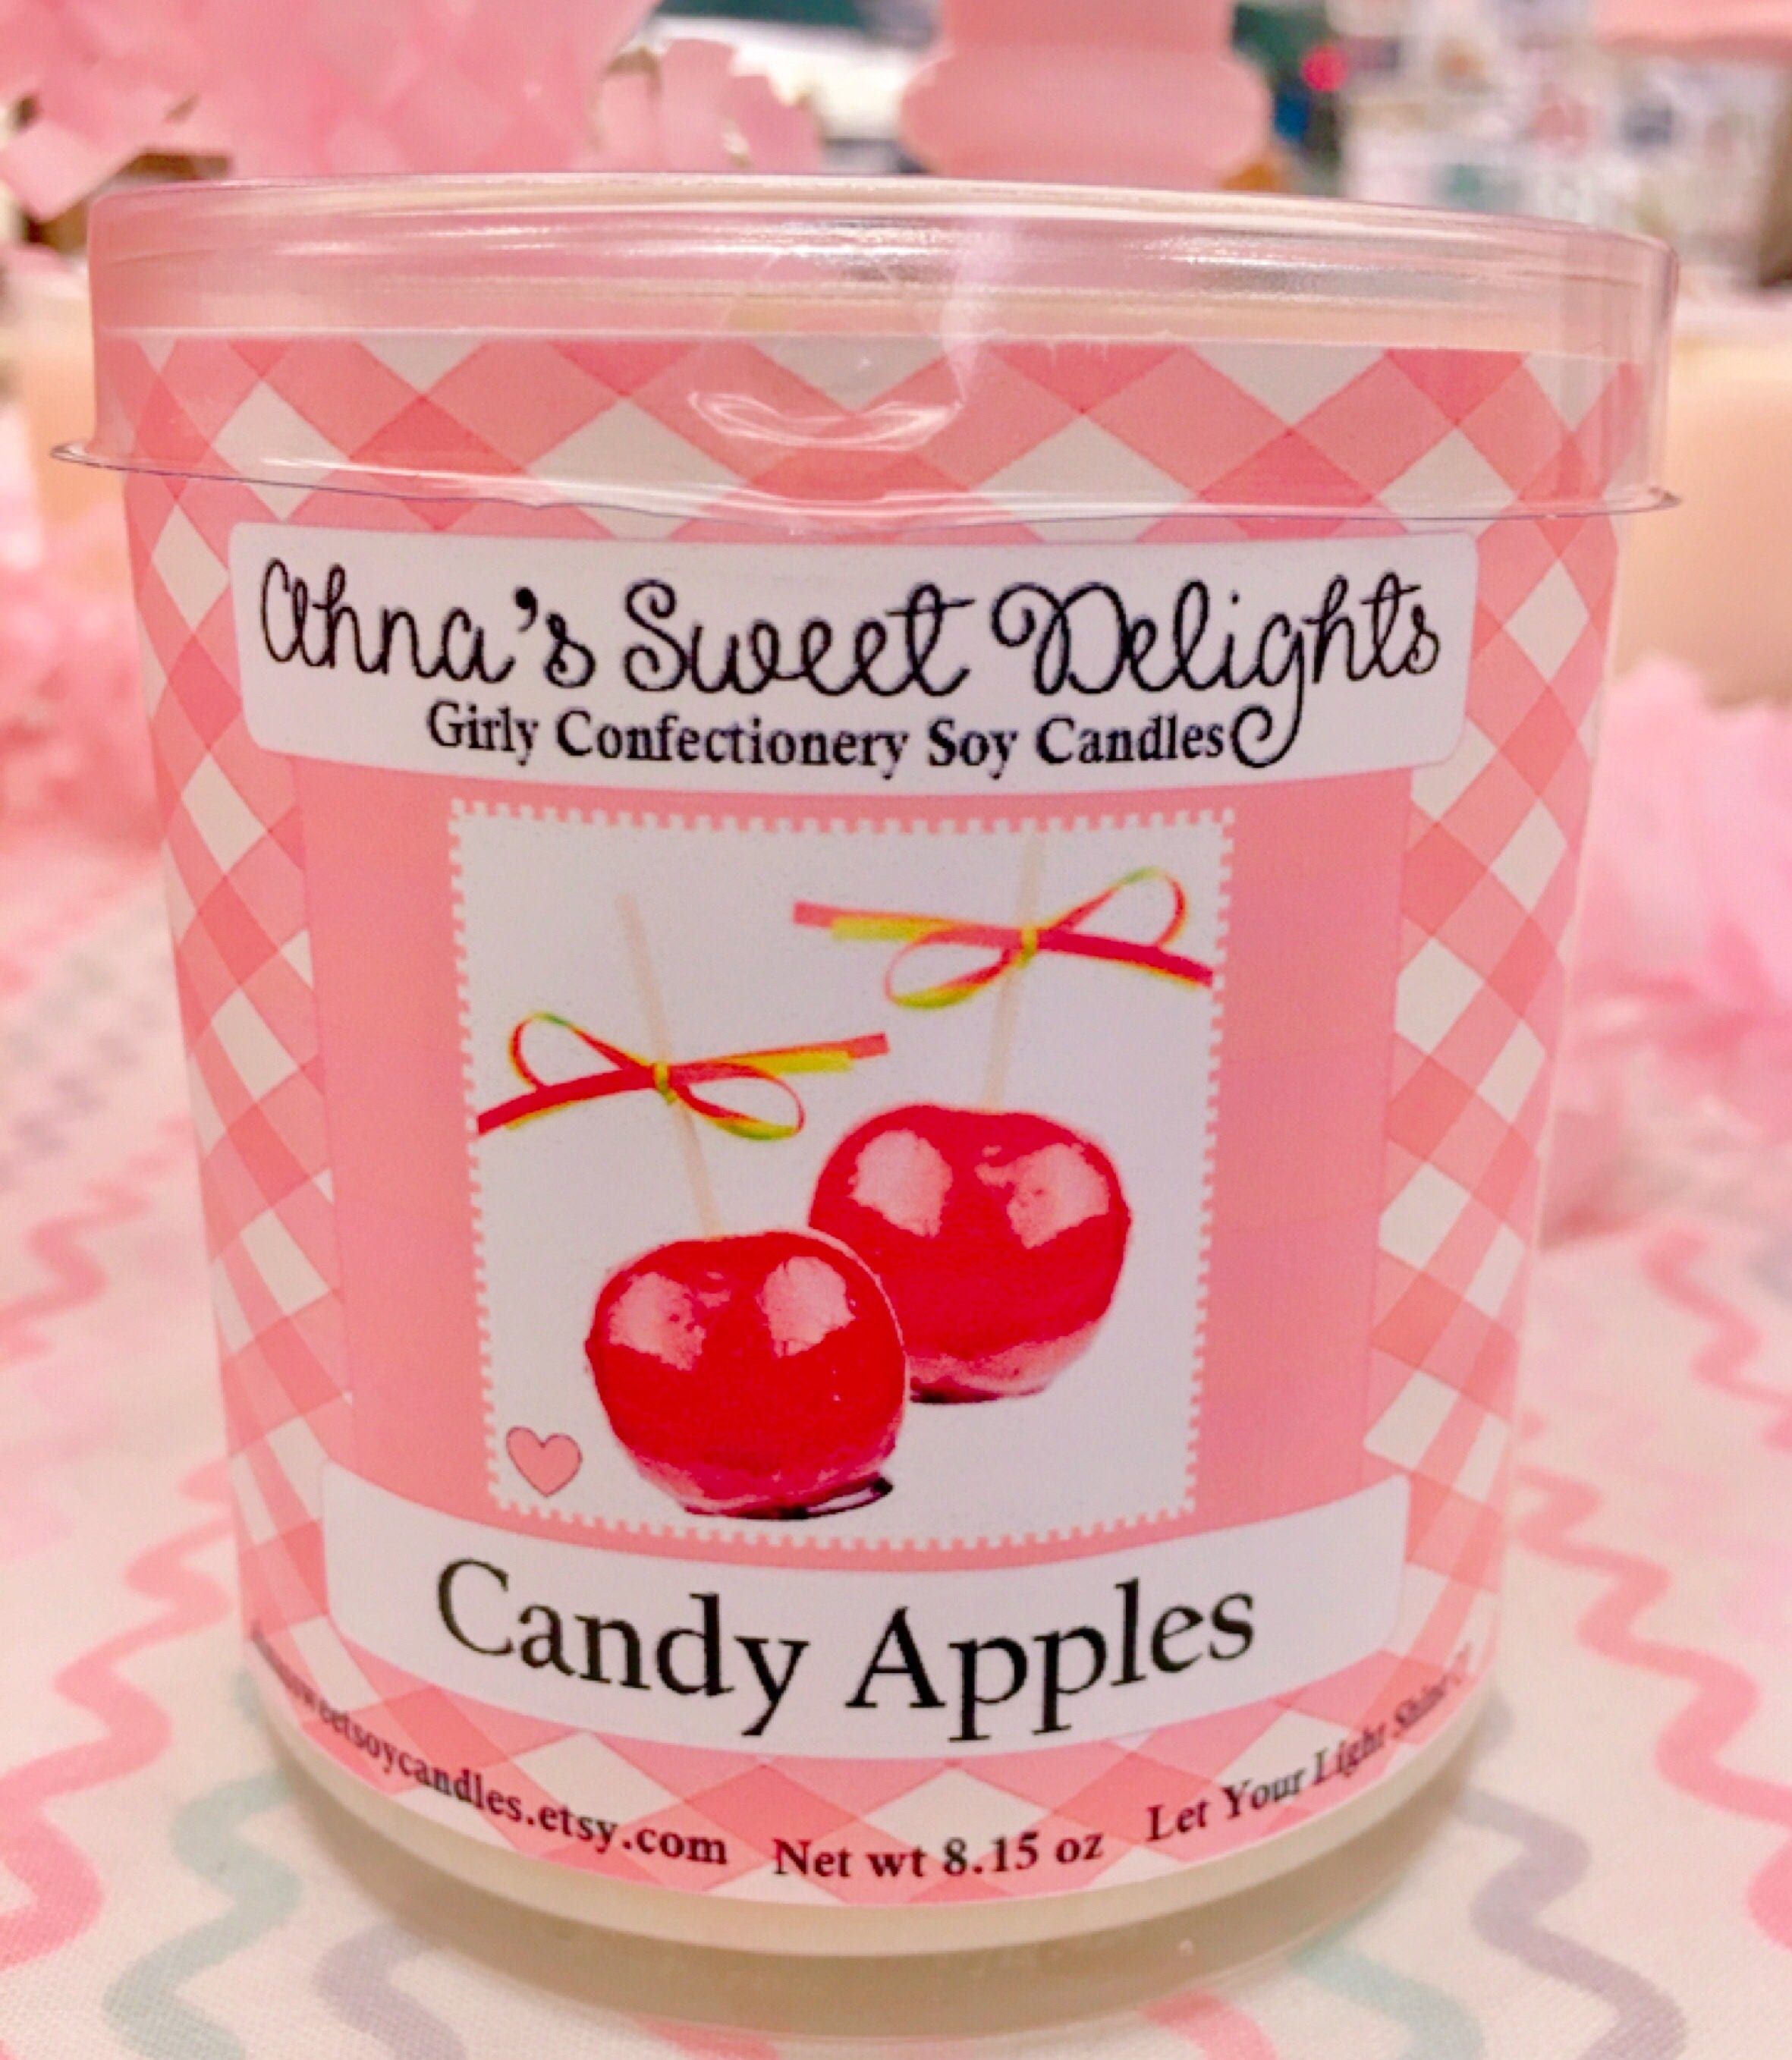 Candy Apples Girly Confectionery Soy Candle